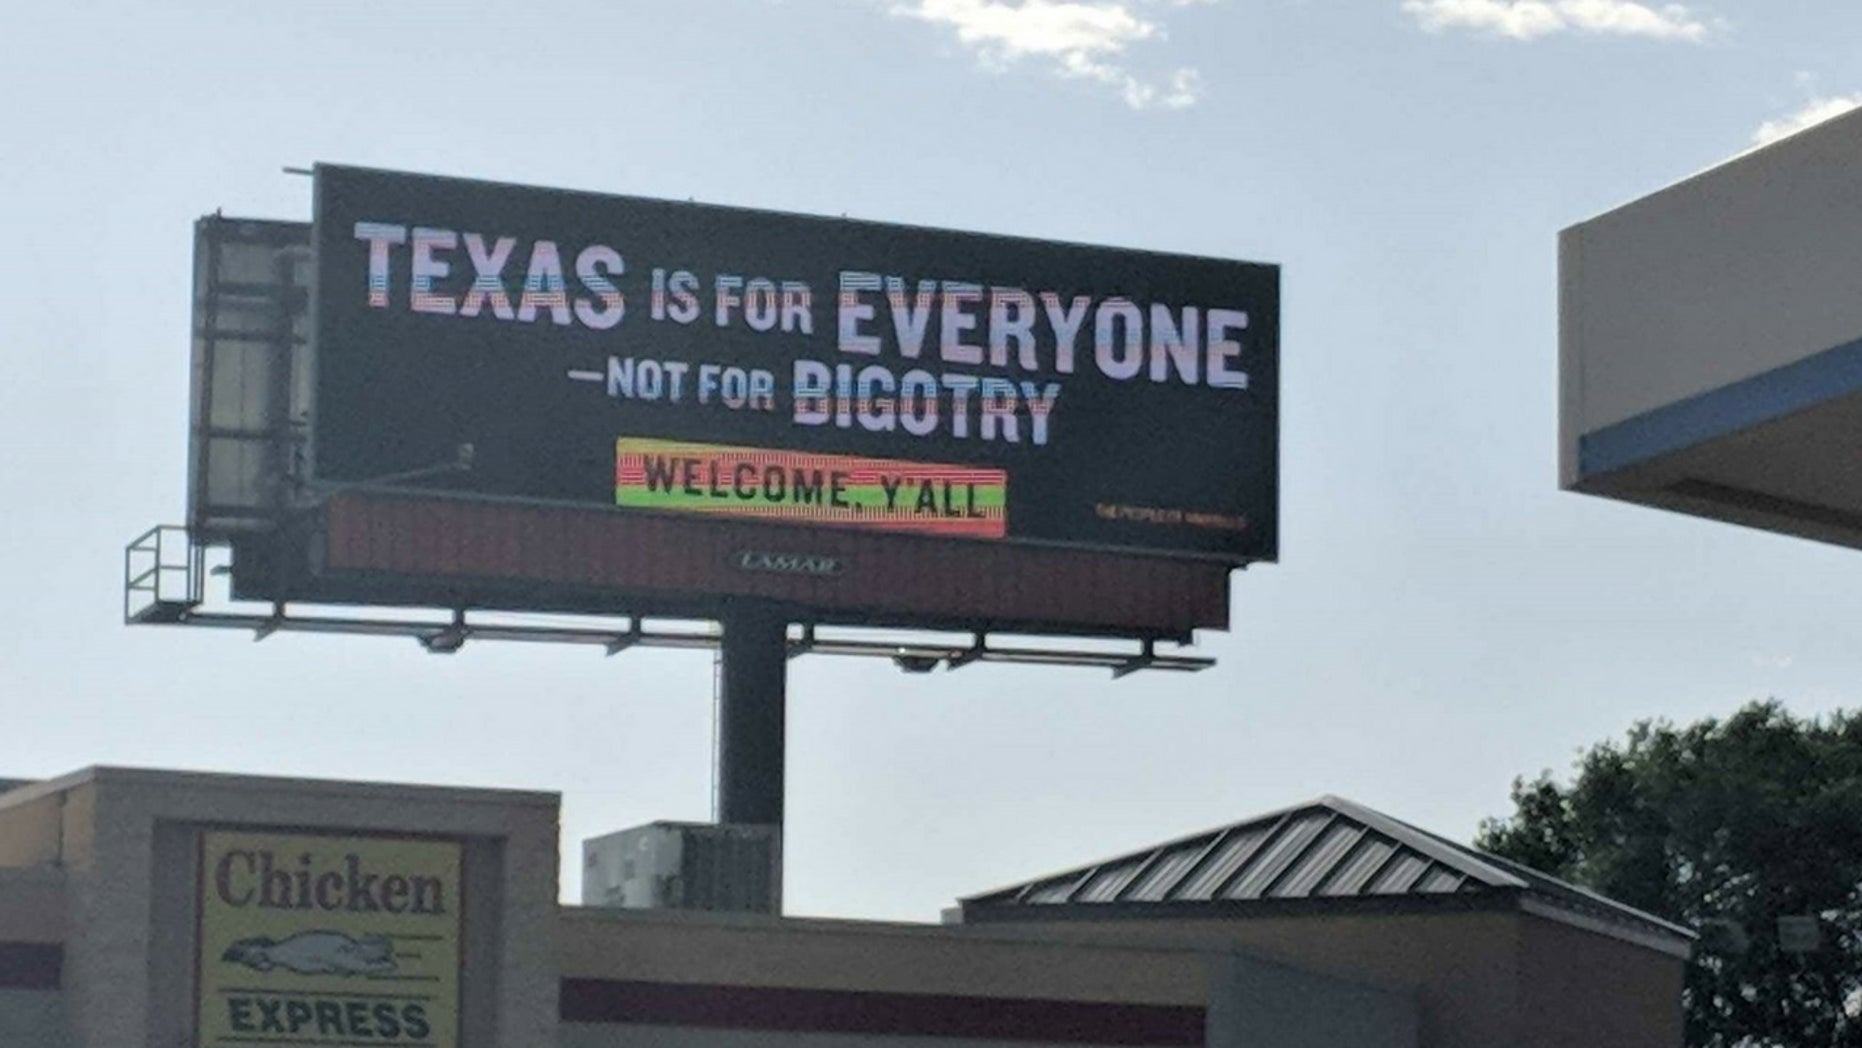 A new billboard has been erected in Amarillo, Texas, telling visitors they were welcome.